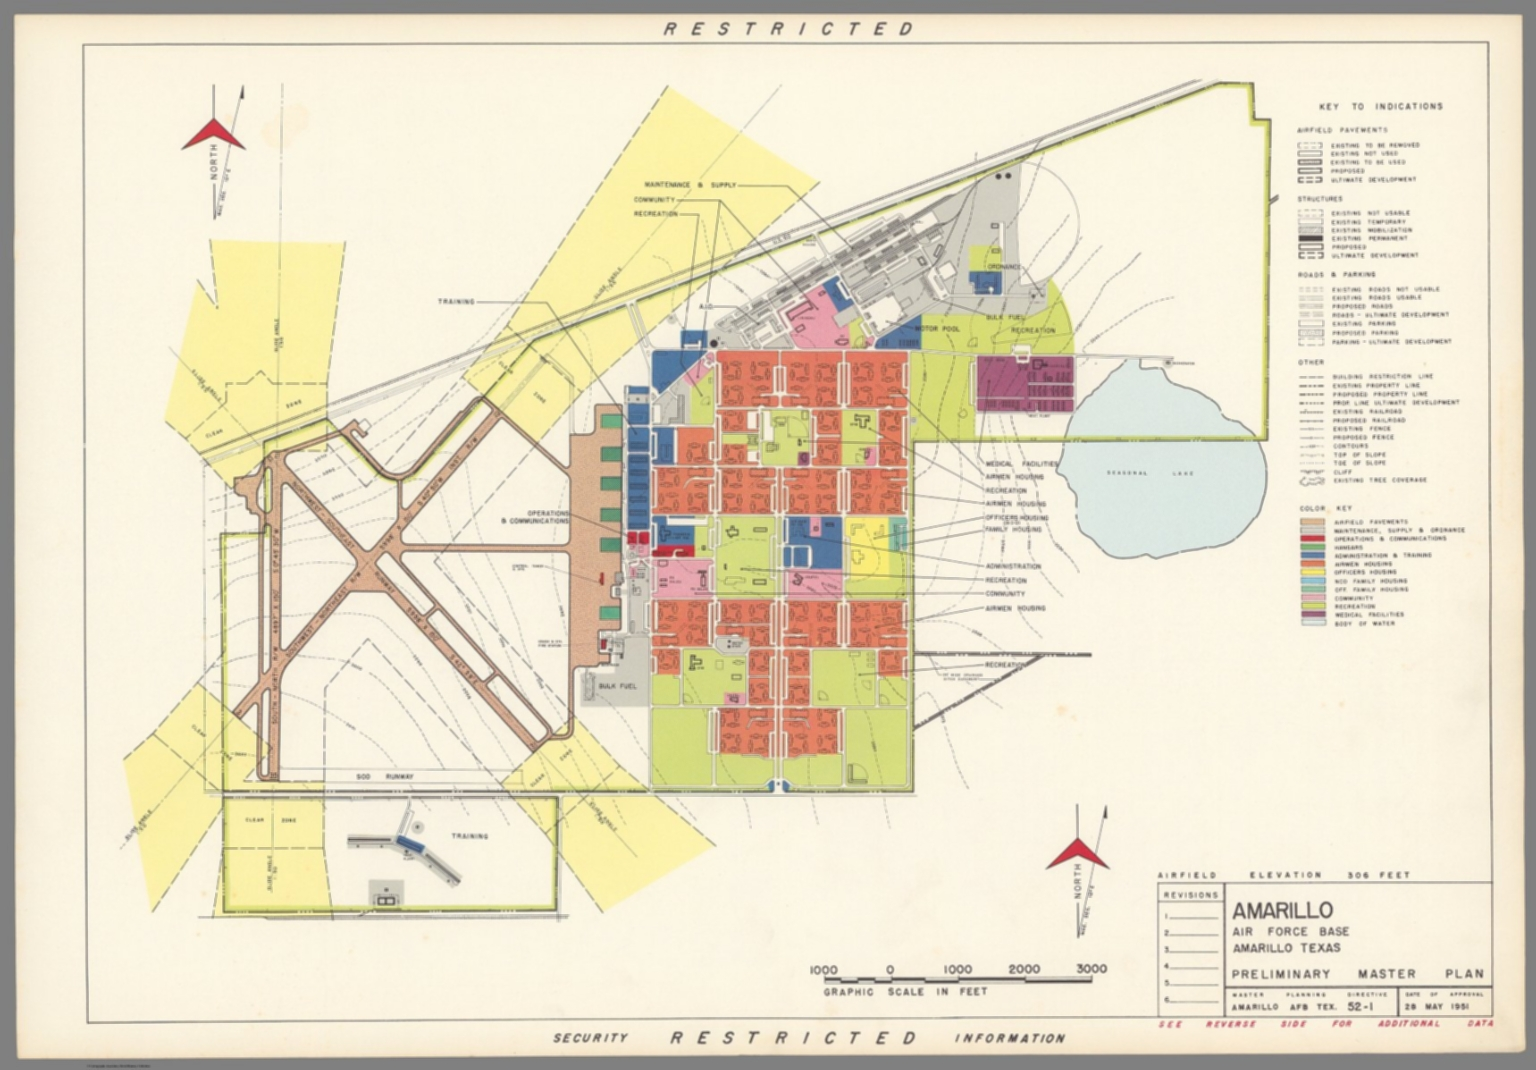 Amarillo Air Force Base : Amarillo Texas : Preliminary ... on map of lackland air force base tx, map of ardmore tx, map of miami tx, map of wink tx, map of smyer tx, map of detroit tx, map of george west tx, map of n richland hills tx, map of memphis tx, map of garza county tx, map of midland tx, map of winkler county tx, map of young county tx, map of guthrie tx, map of webb county tx, map of texoma tx, map texas tx, map of riverside tx, map of gladewater tx, map of ector county tx,